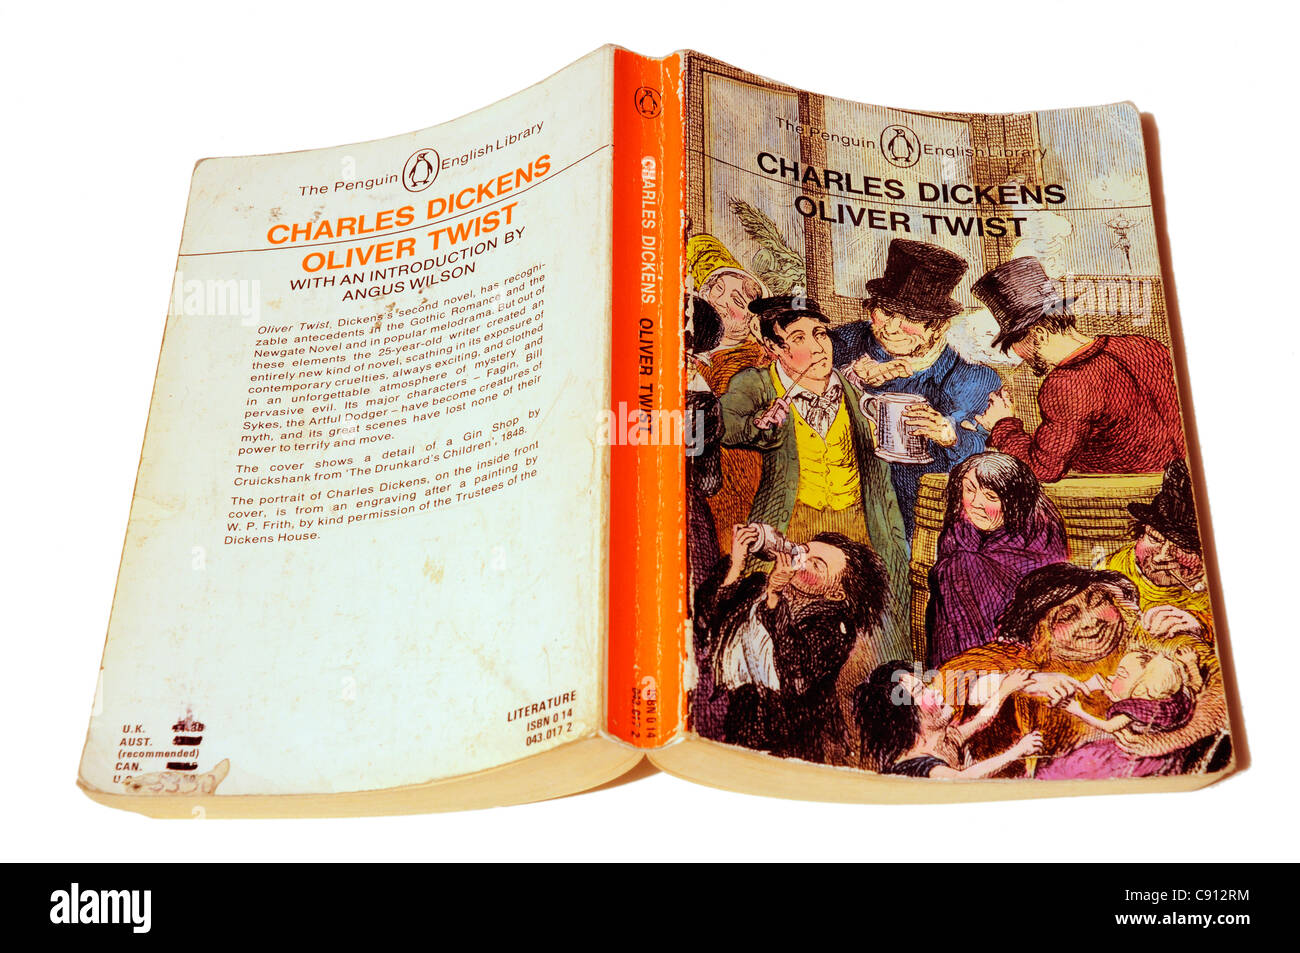 Oliver Twist by Charles Dickens Stock Photo